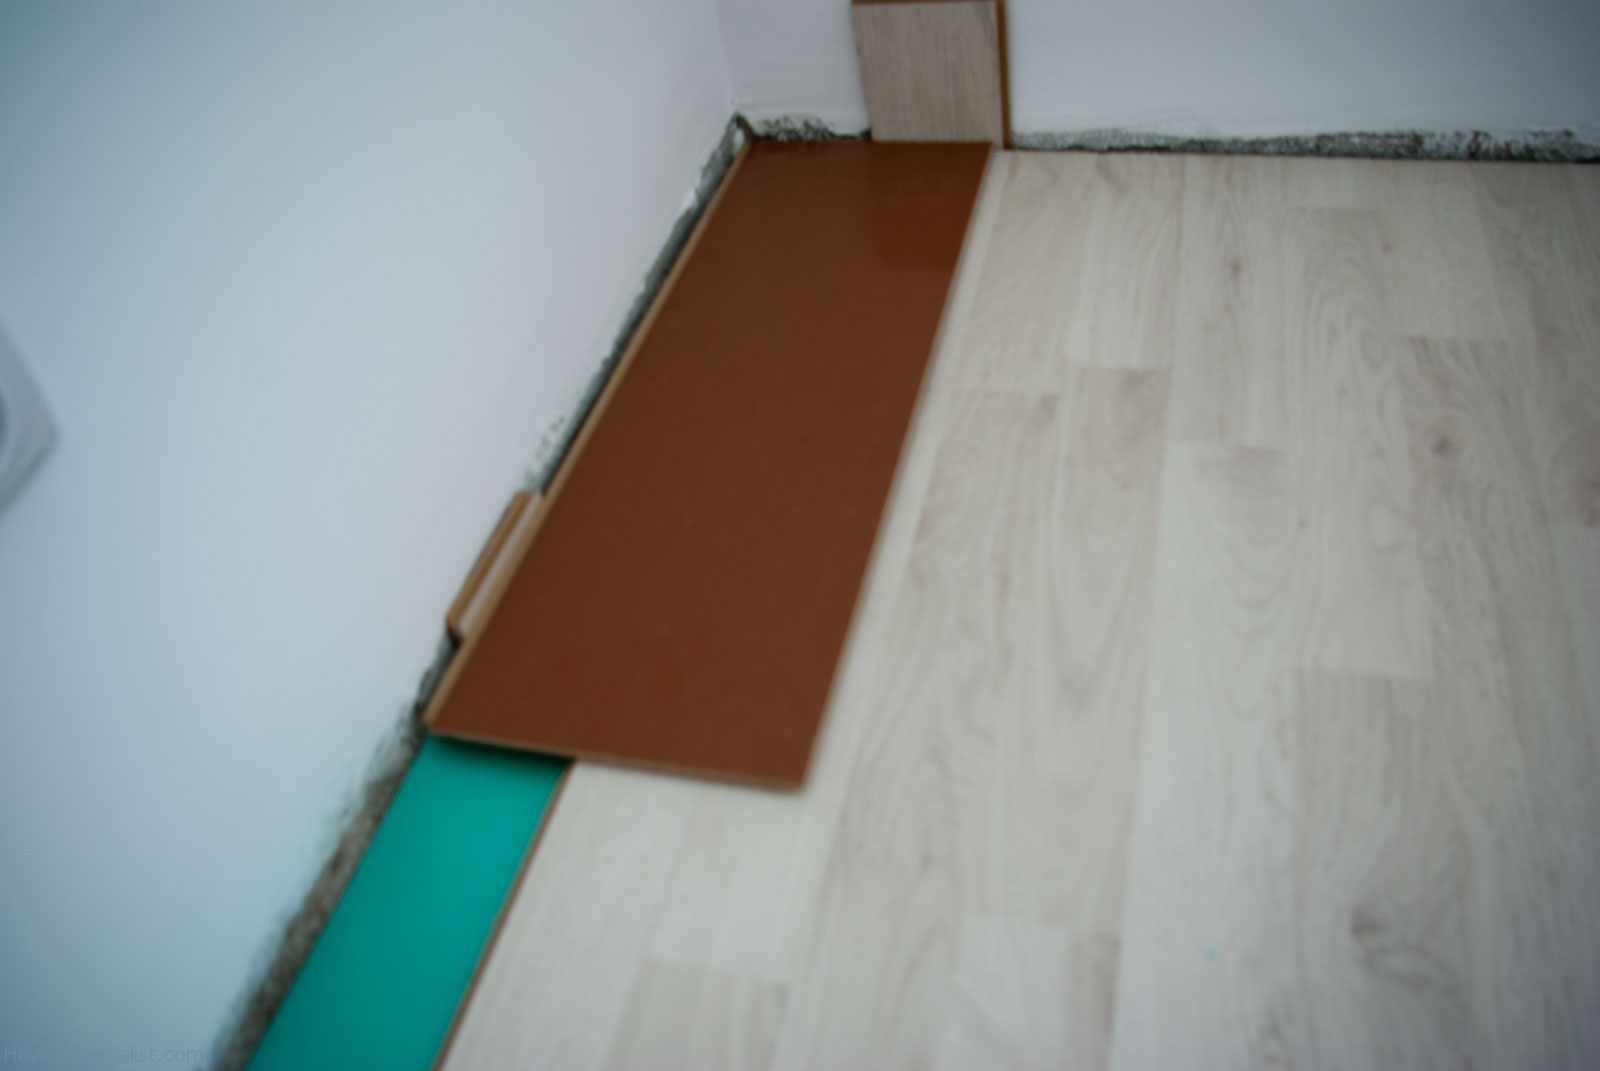 How to lay laminate flooring on concrete howtospecialist for How to lay down laminate flooring